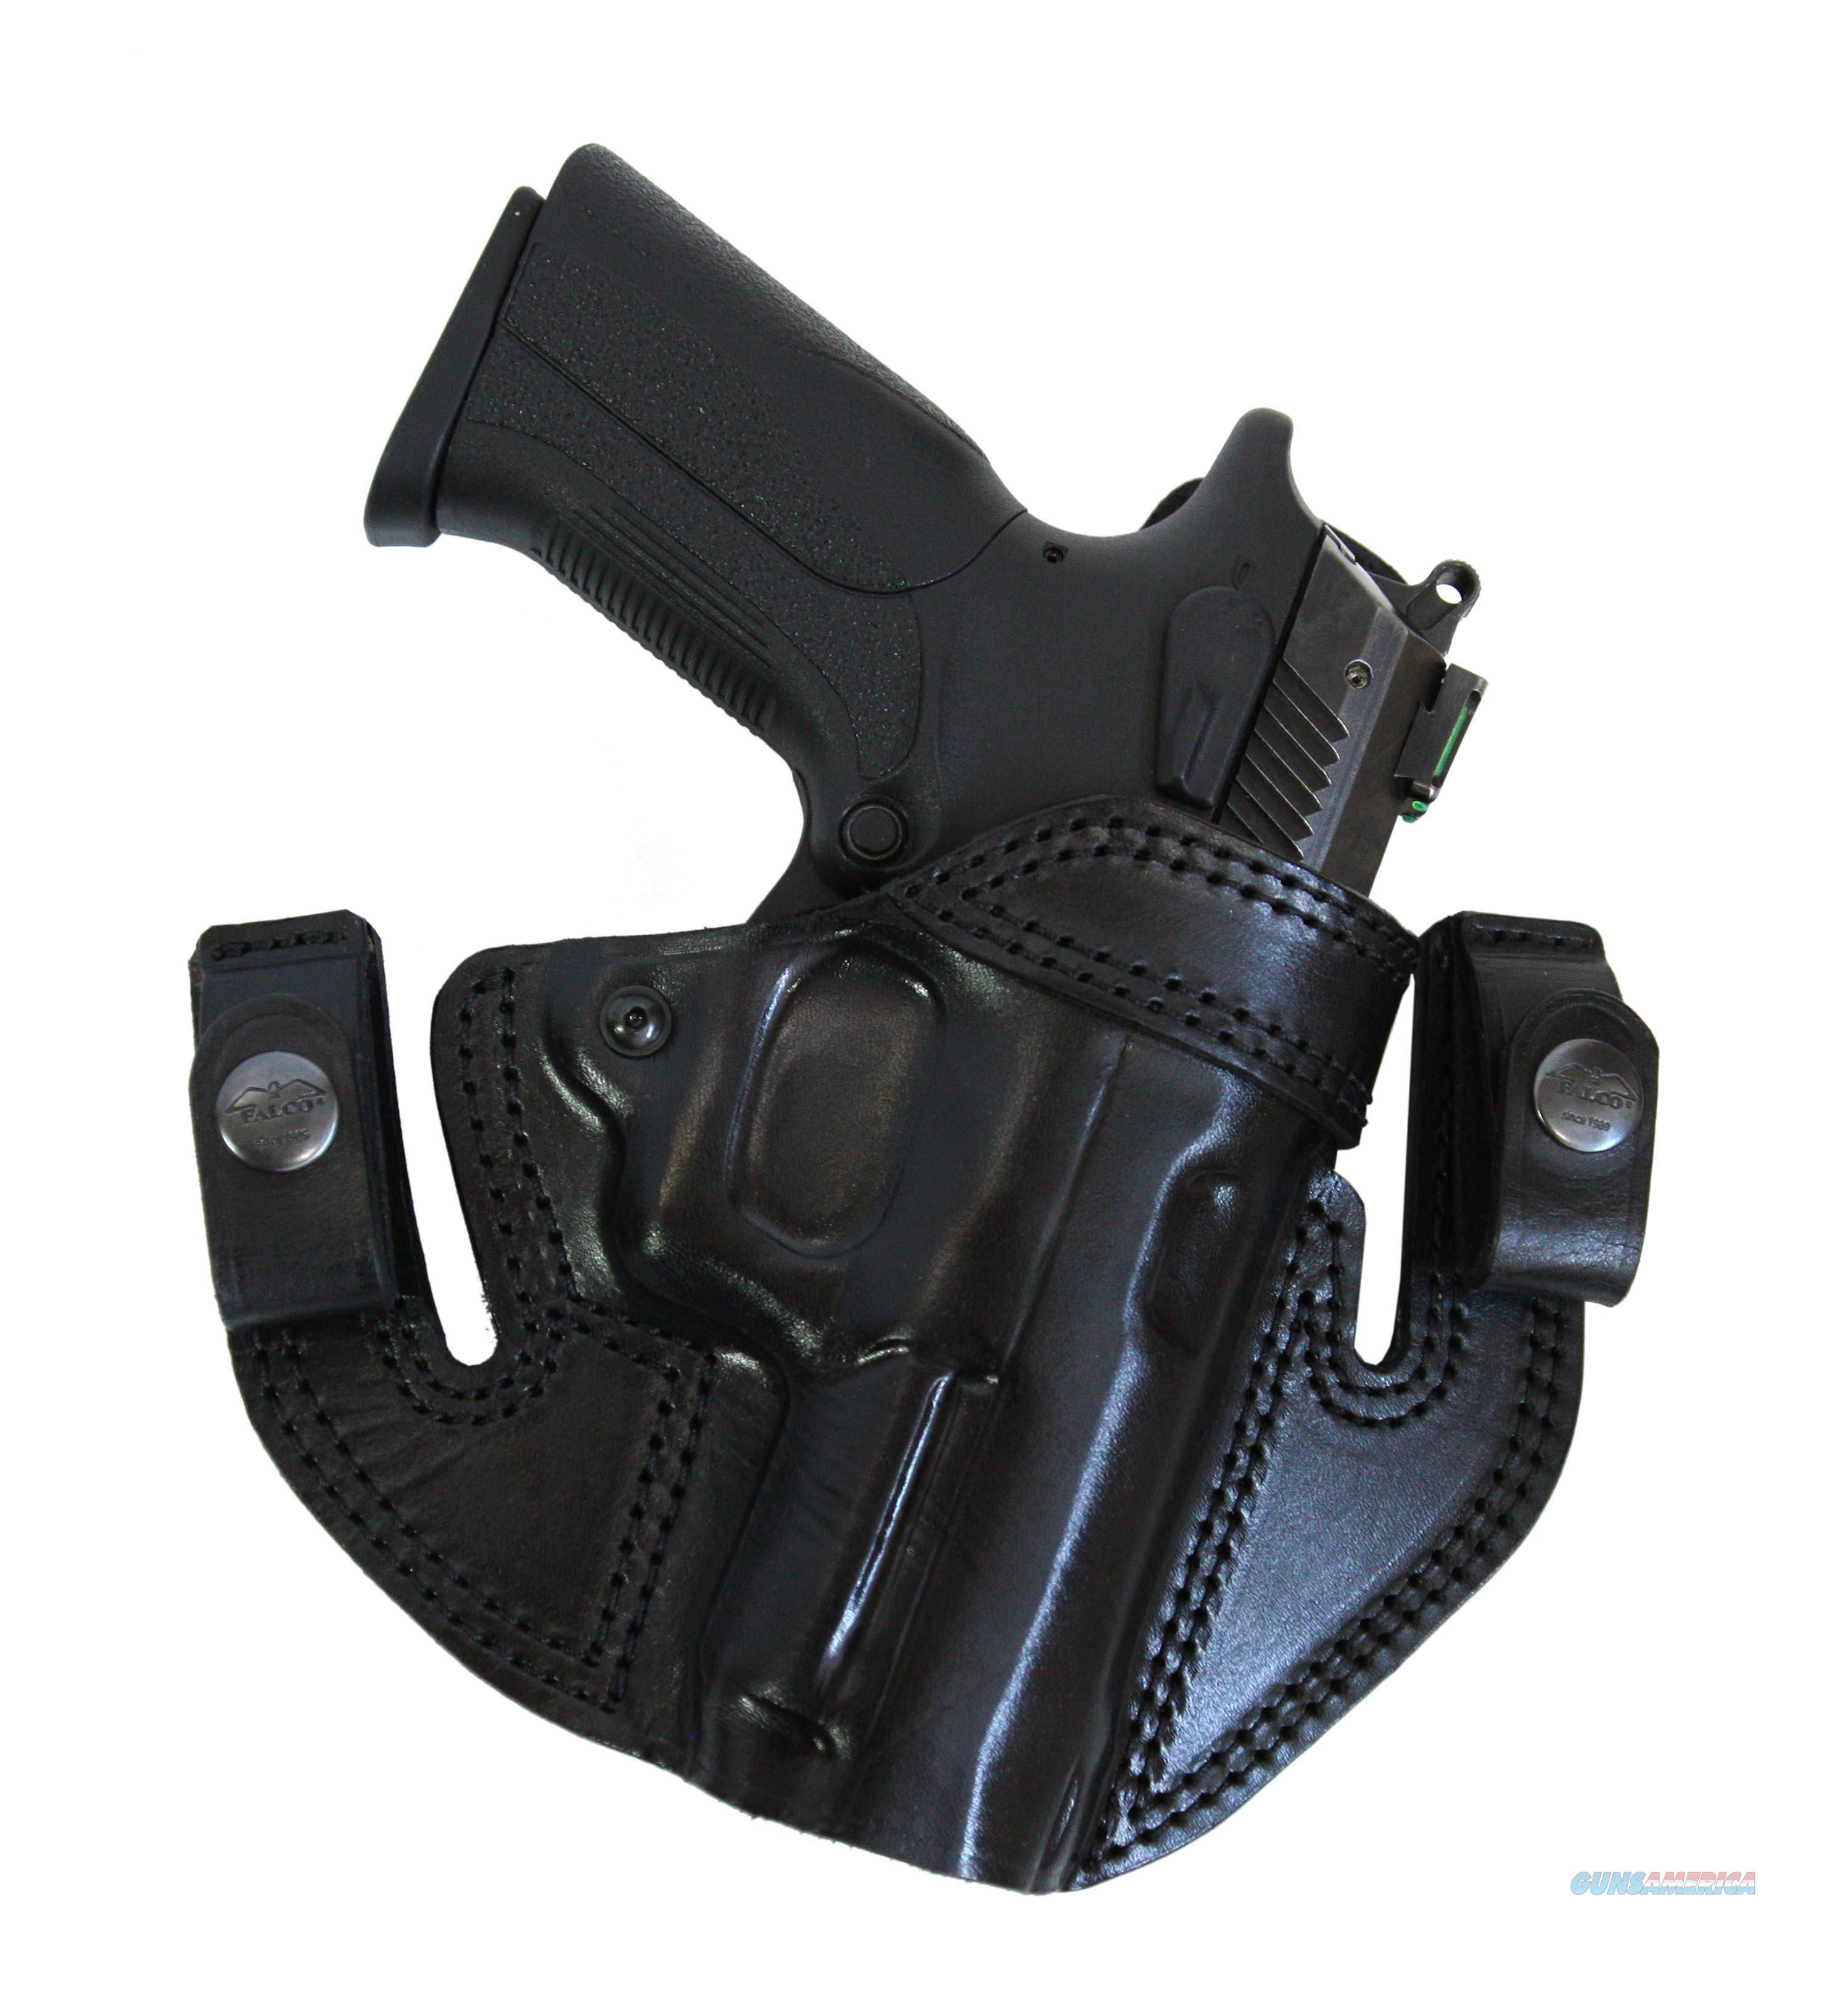 IWB / OWB Leather Gun Holster  Glock 20, 21  Non-Guns > Holsters and Gunleather > Concealed Carry